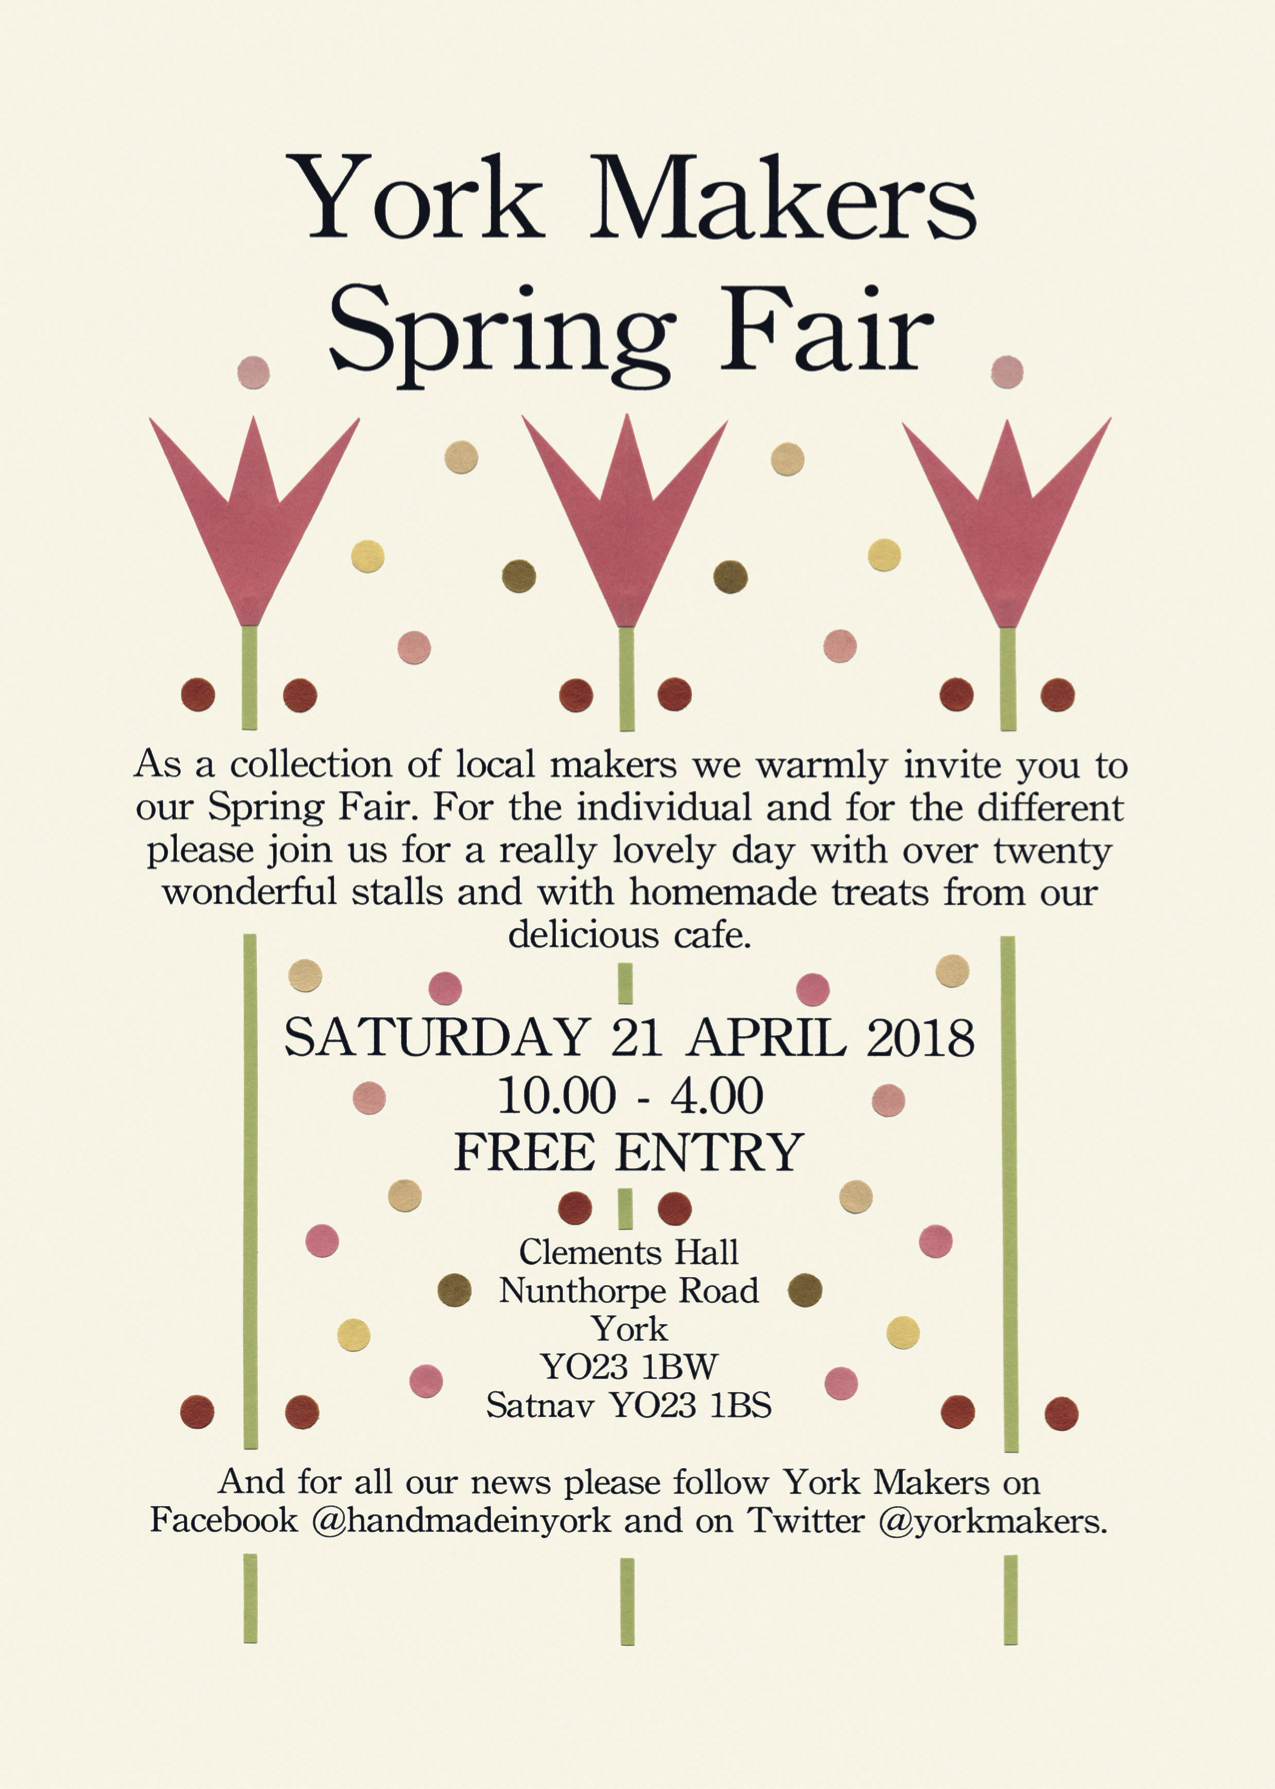 York Makers Spring Fair